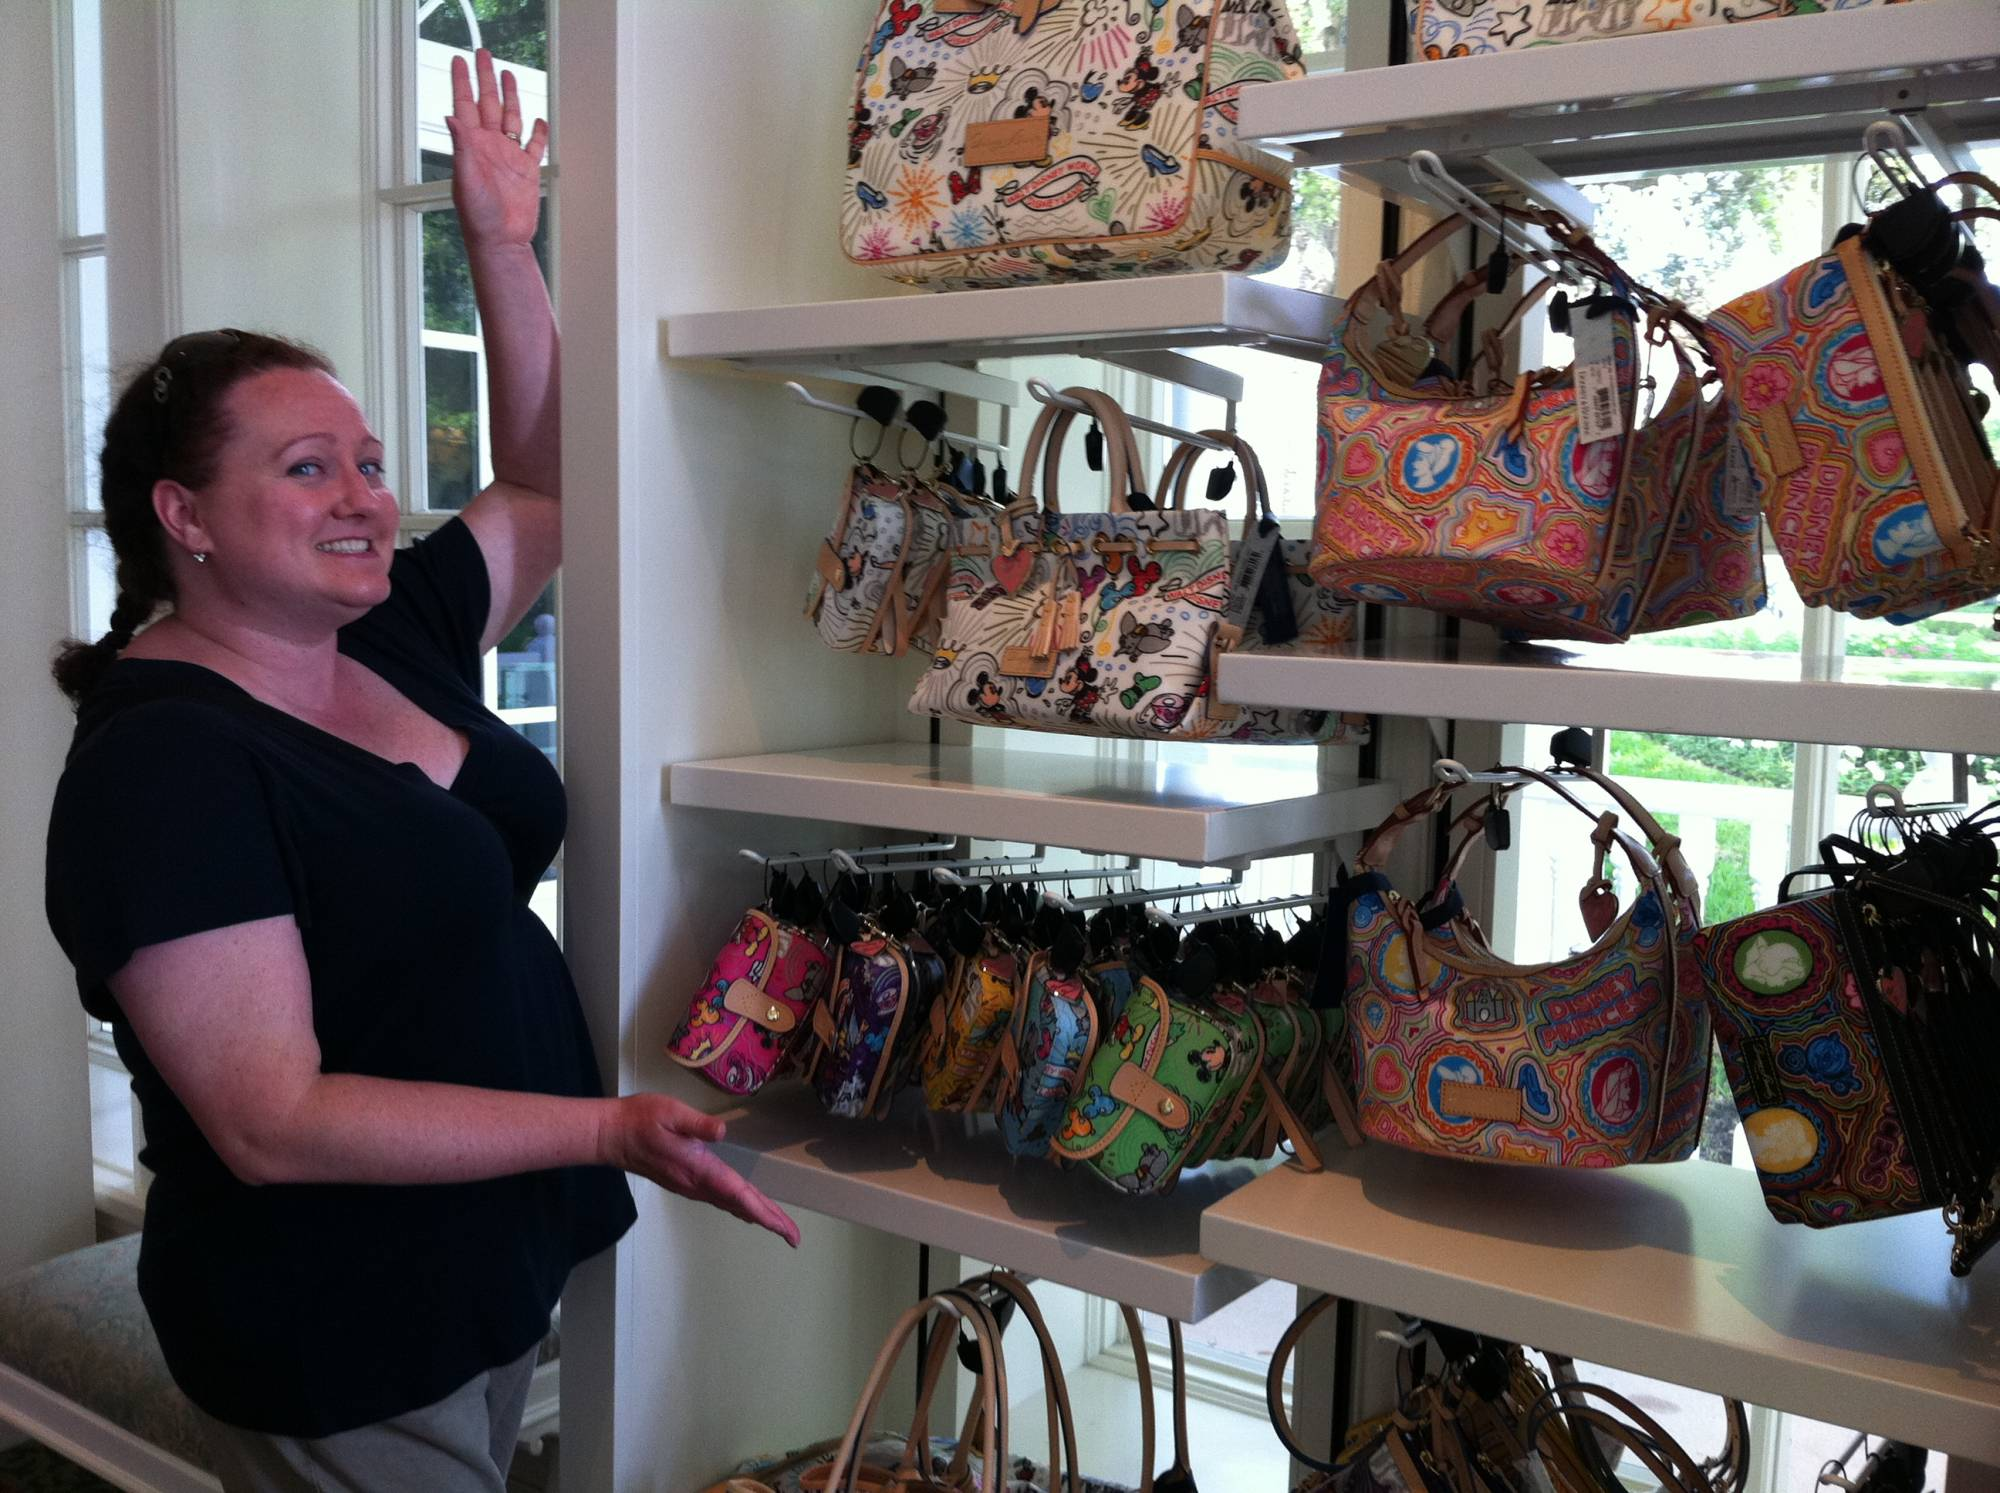 Dooney & Bourke Bags at the Grand Floridian